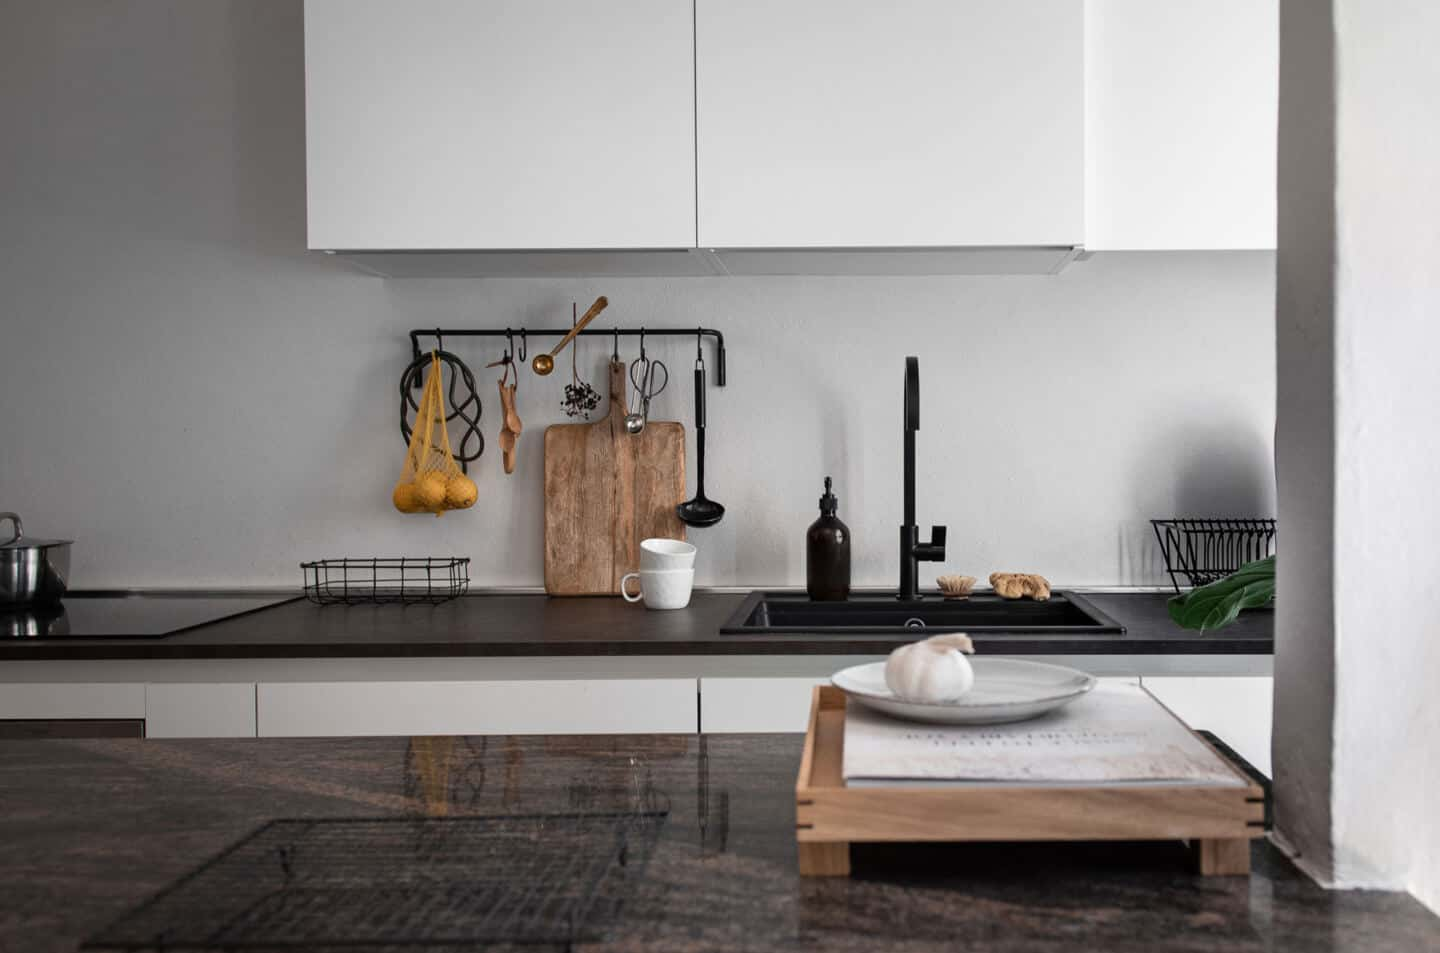 6 Easy Ways to Spruce Up Your Kitchen on a Budget - Image of a kitchen sink with cabinets above